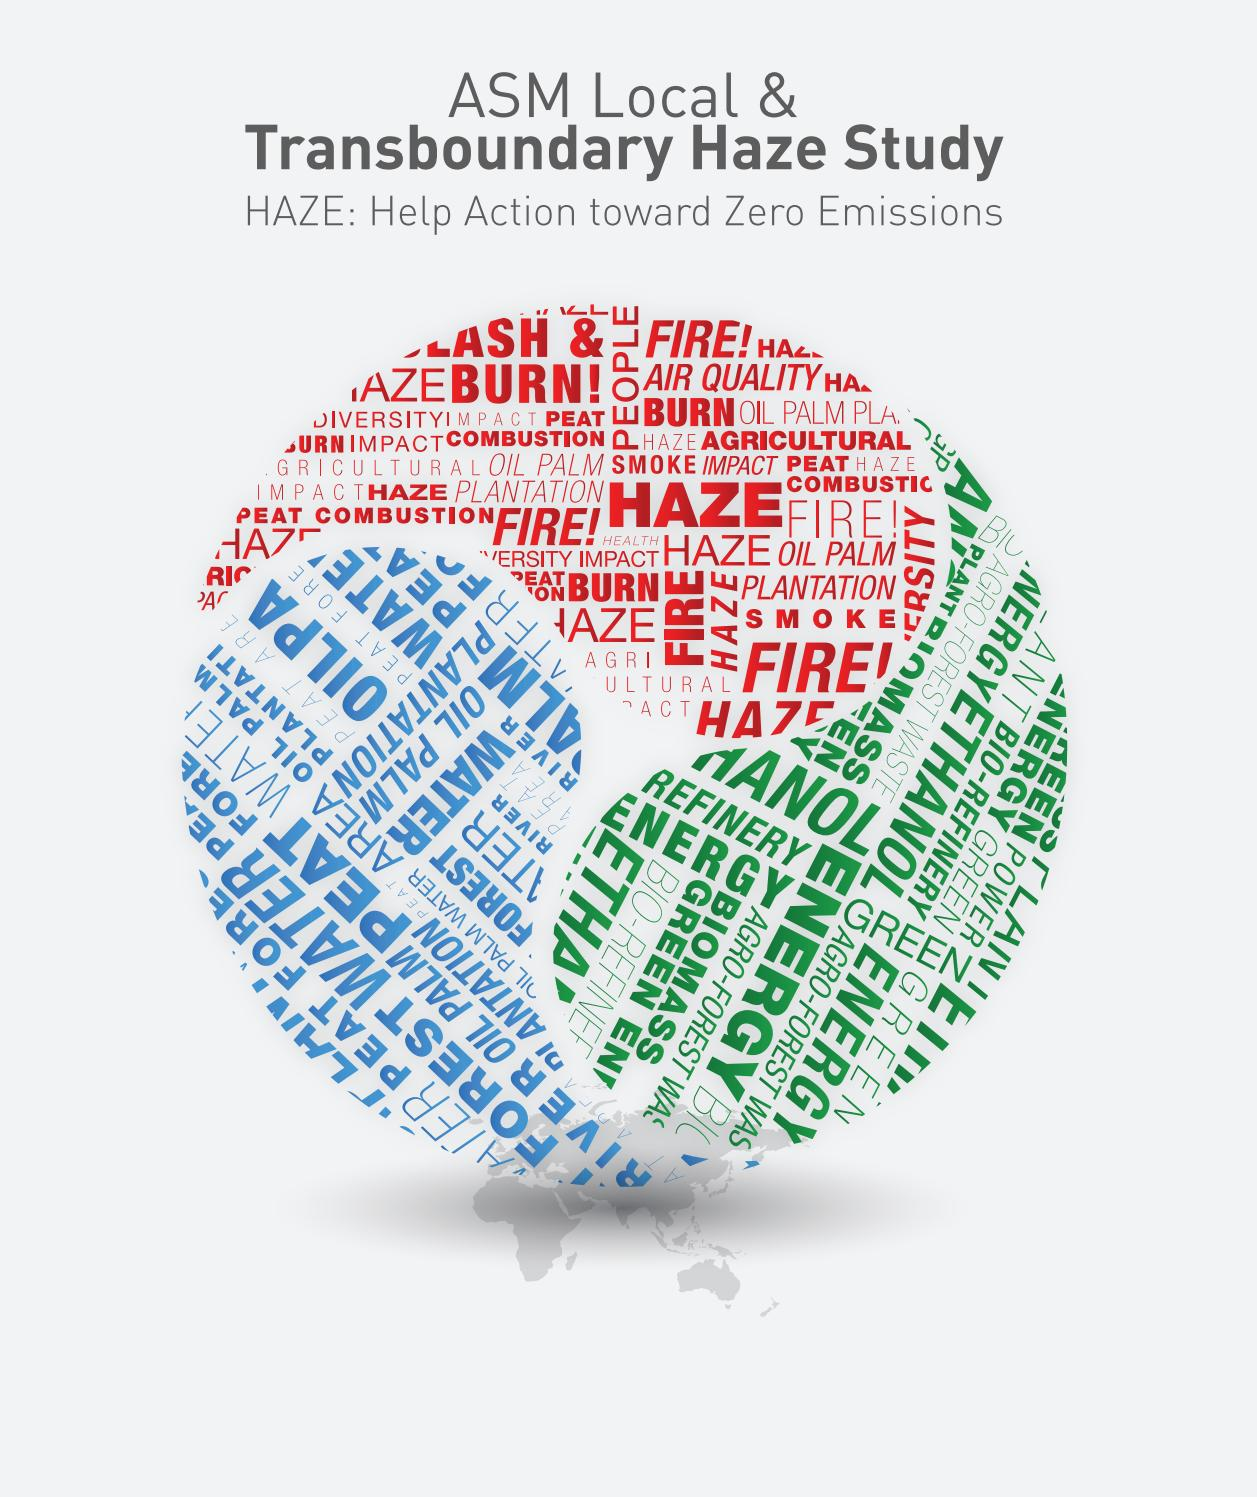 hight resolution of asm local transboundary haze study by academy of sciences malaysia issuu